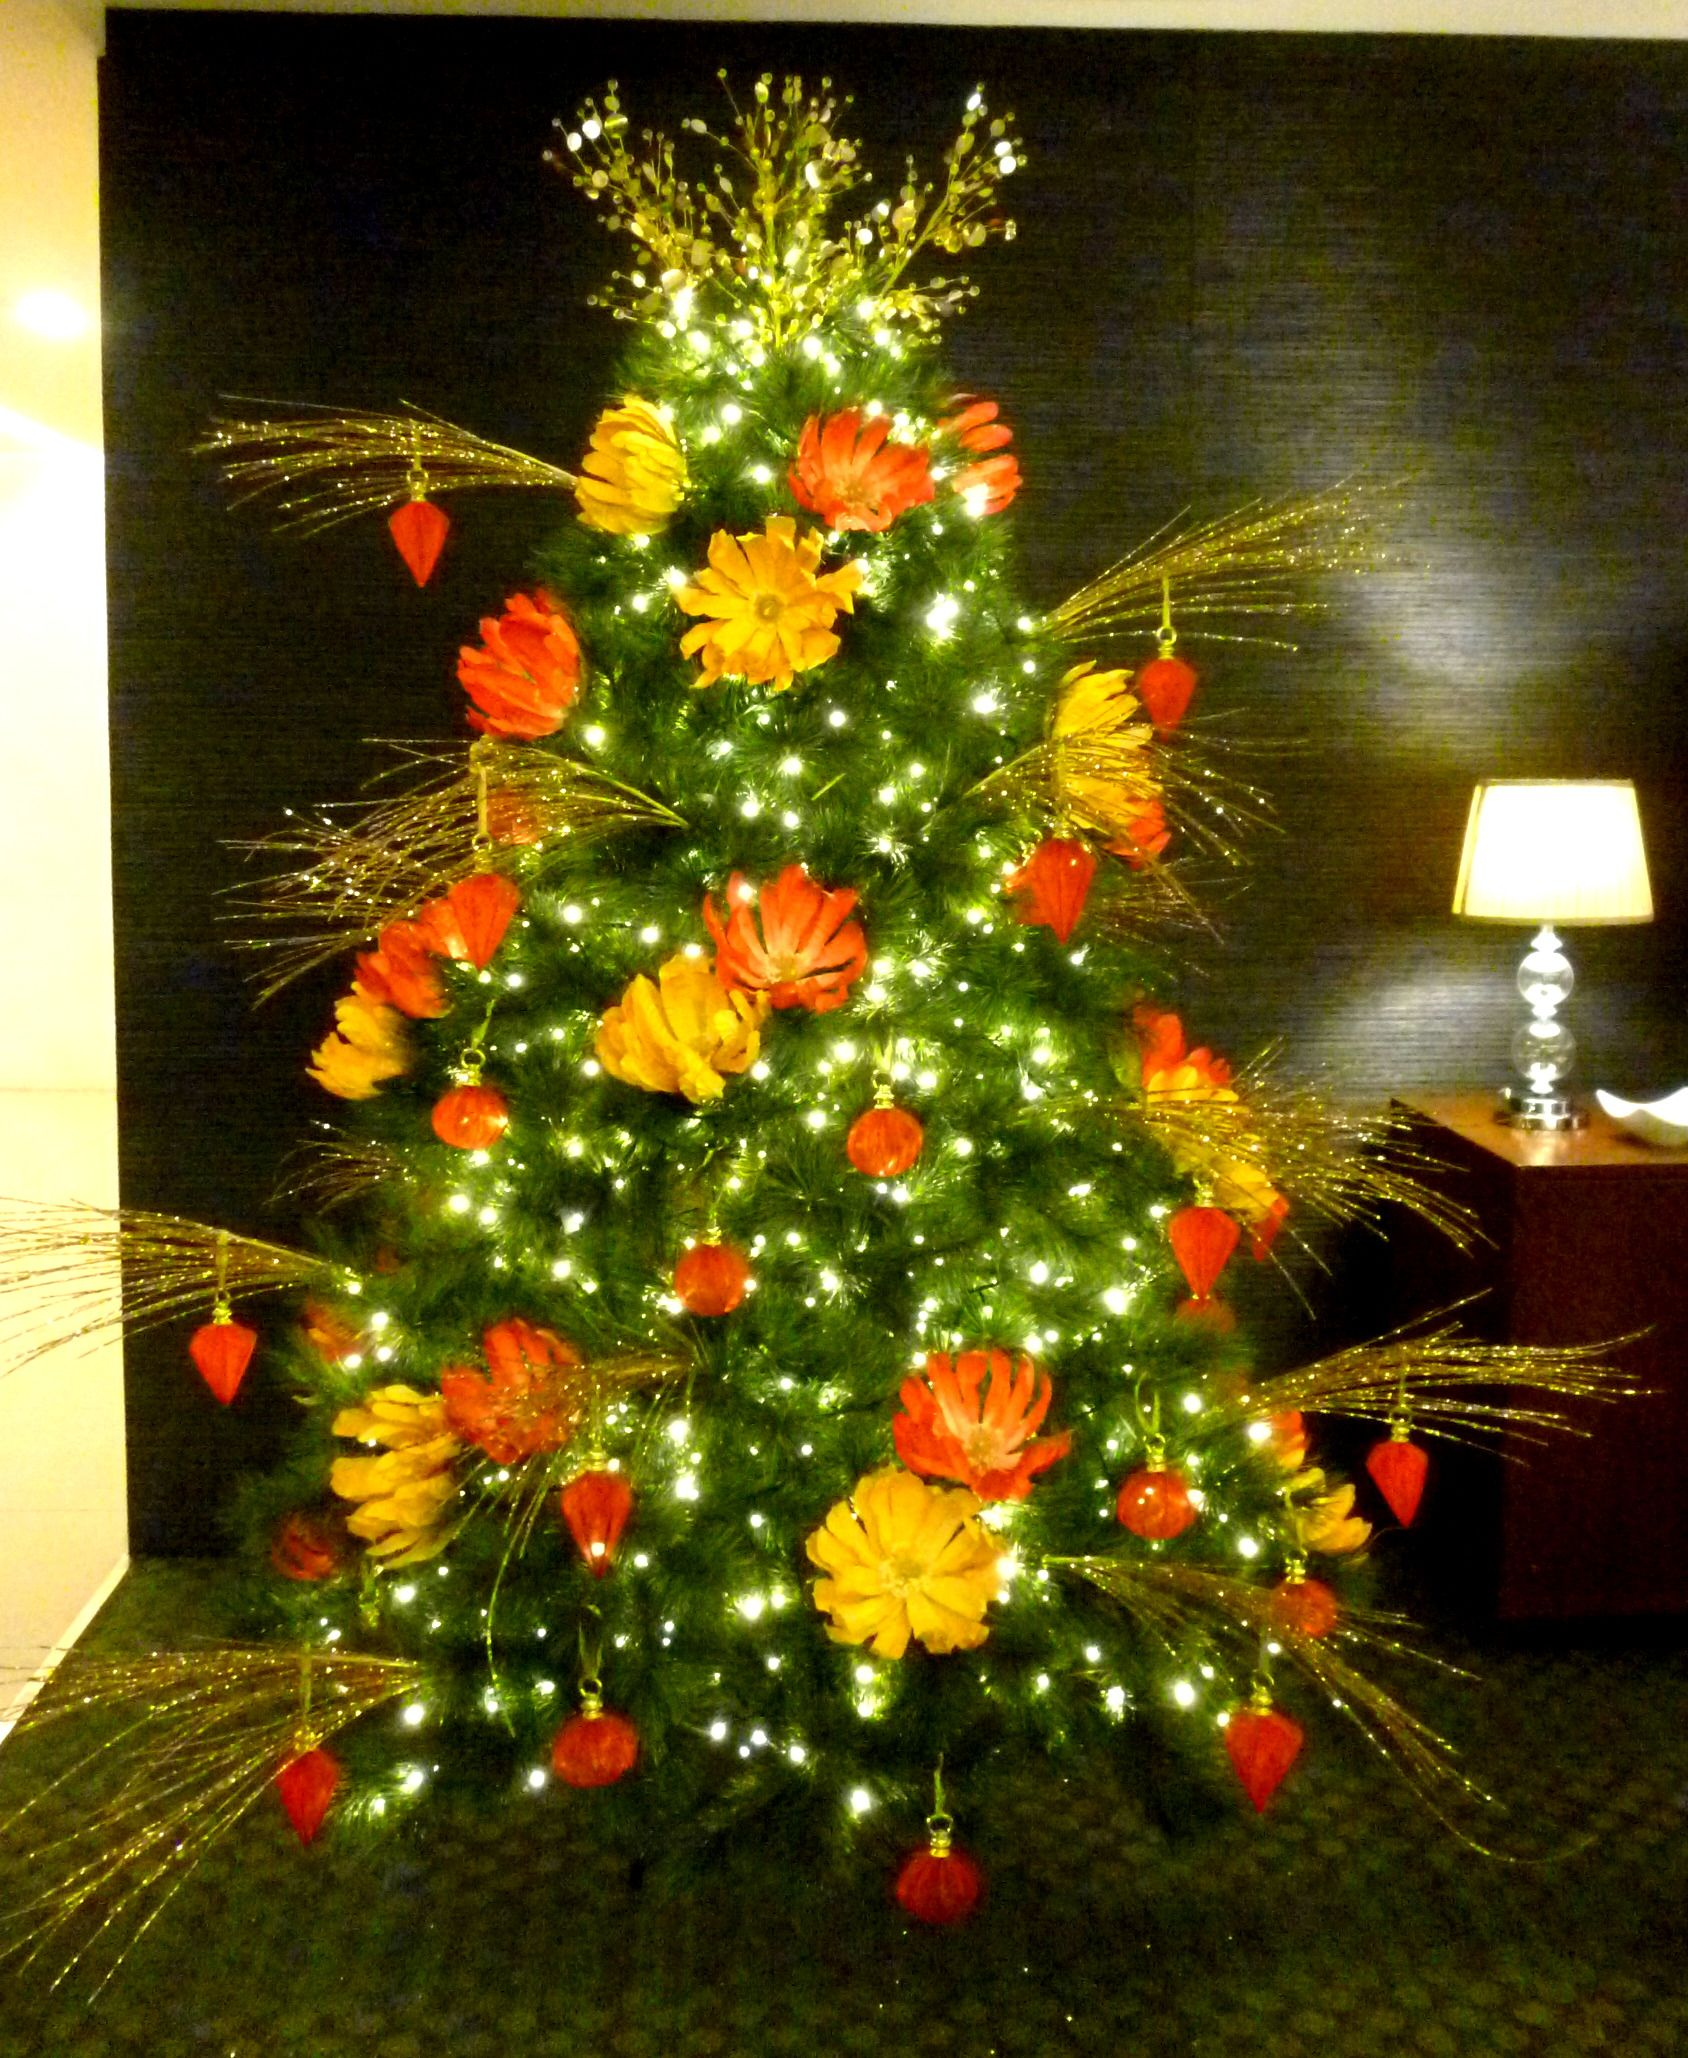 Christmas Decorations To Buy In China: Oriental Inspired Christmas Tree With Red And Gold